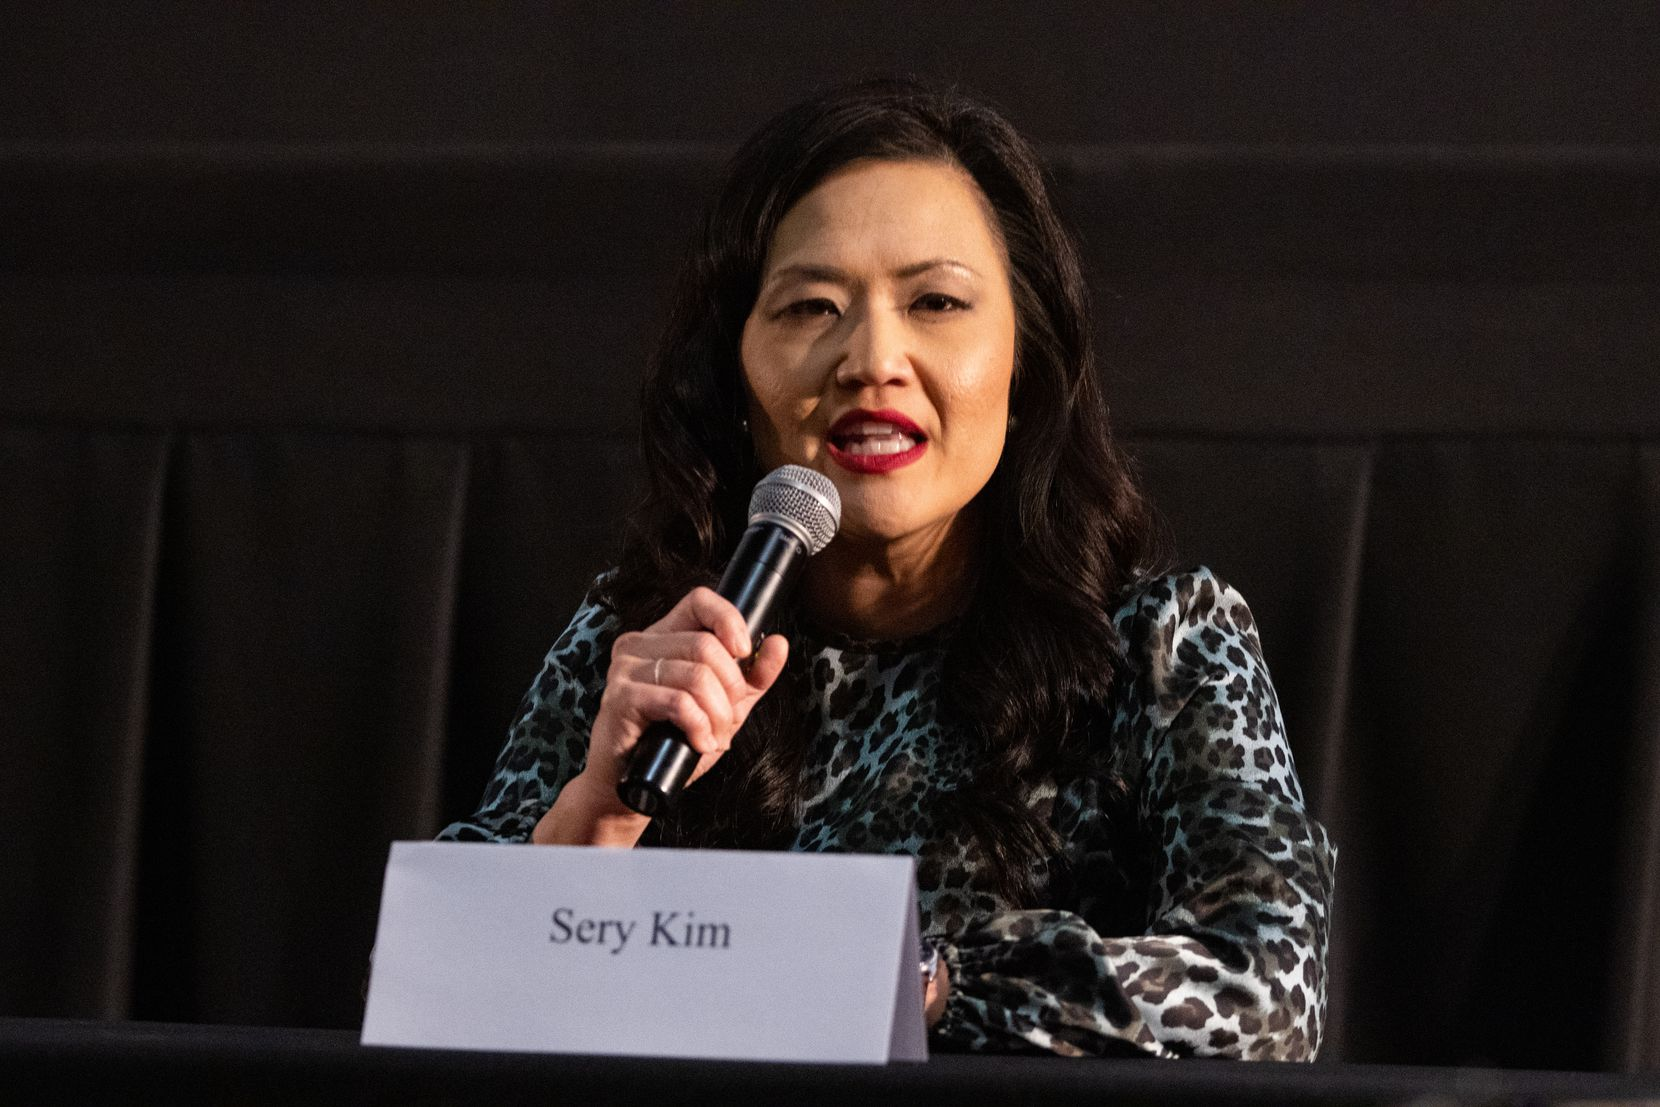 Sery Kim, a Republican candidate running in the 6th Congressional District of Texas race, answers questions during a forum hosted by the Arlington Republican Club at Studio Movie Grill in Arlington on Wednesday, March 31, 2021. (Juan Figueroa/ The Dallas Morning News)